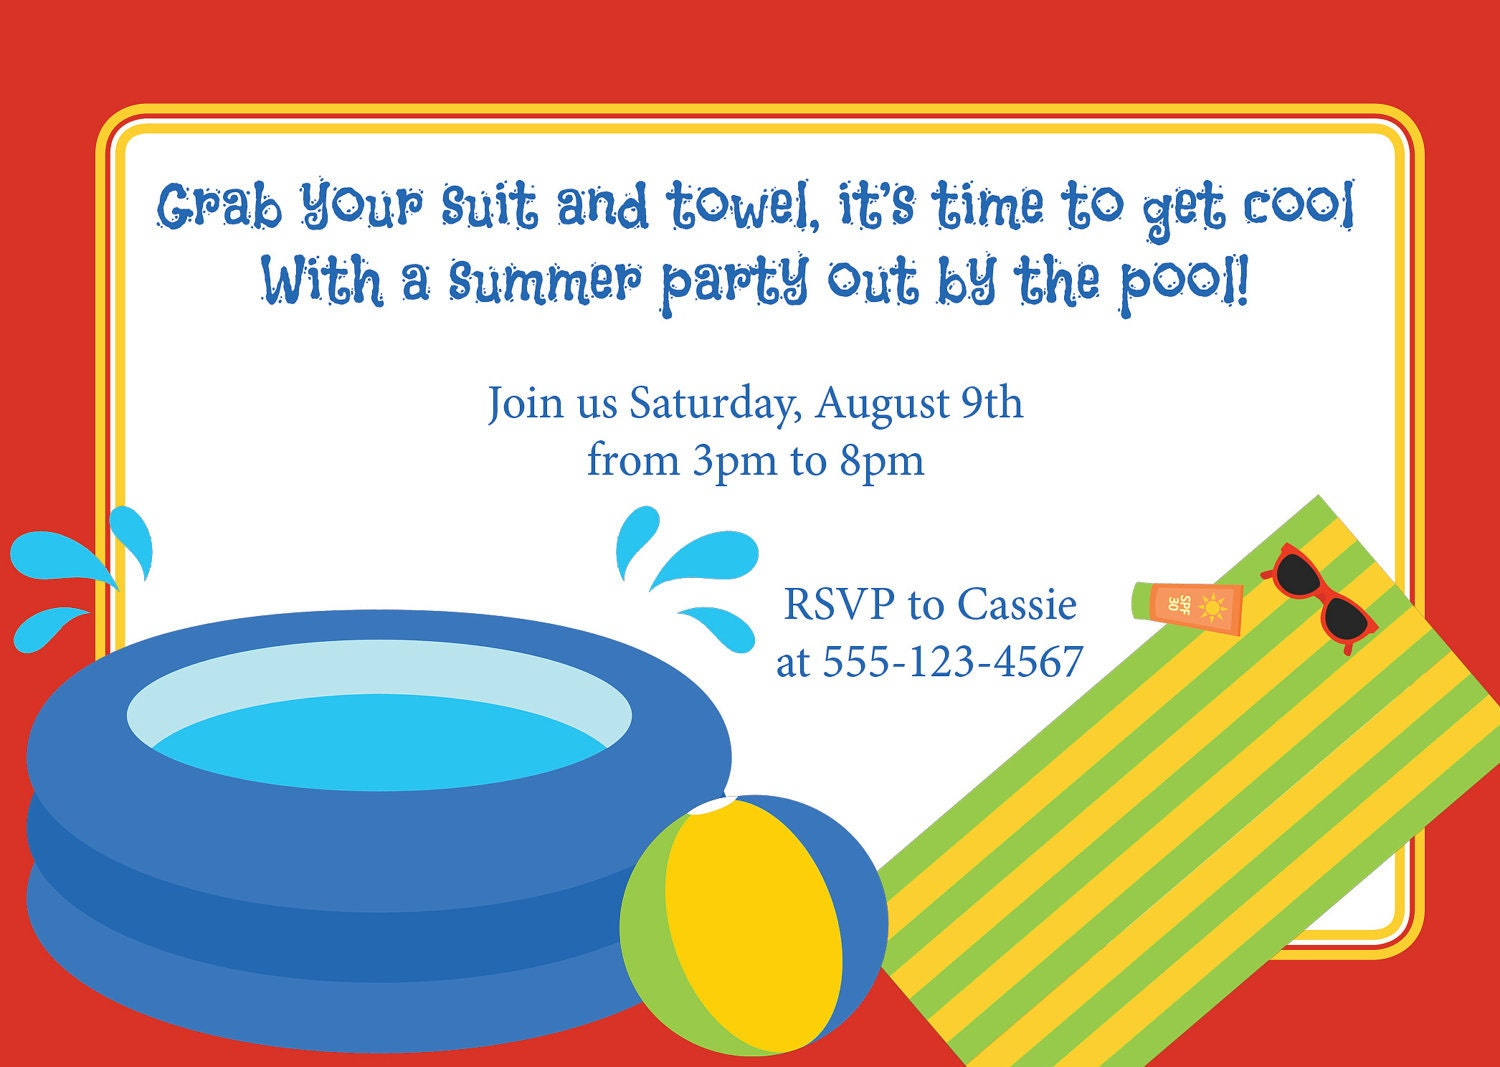 Customized Graduation Party Invitations for good invitations layout